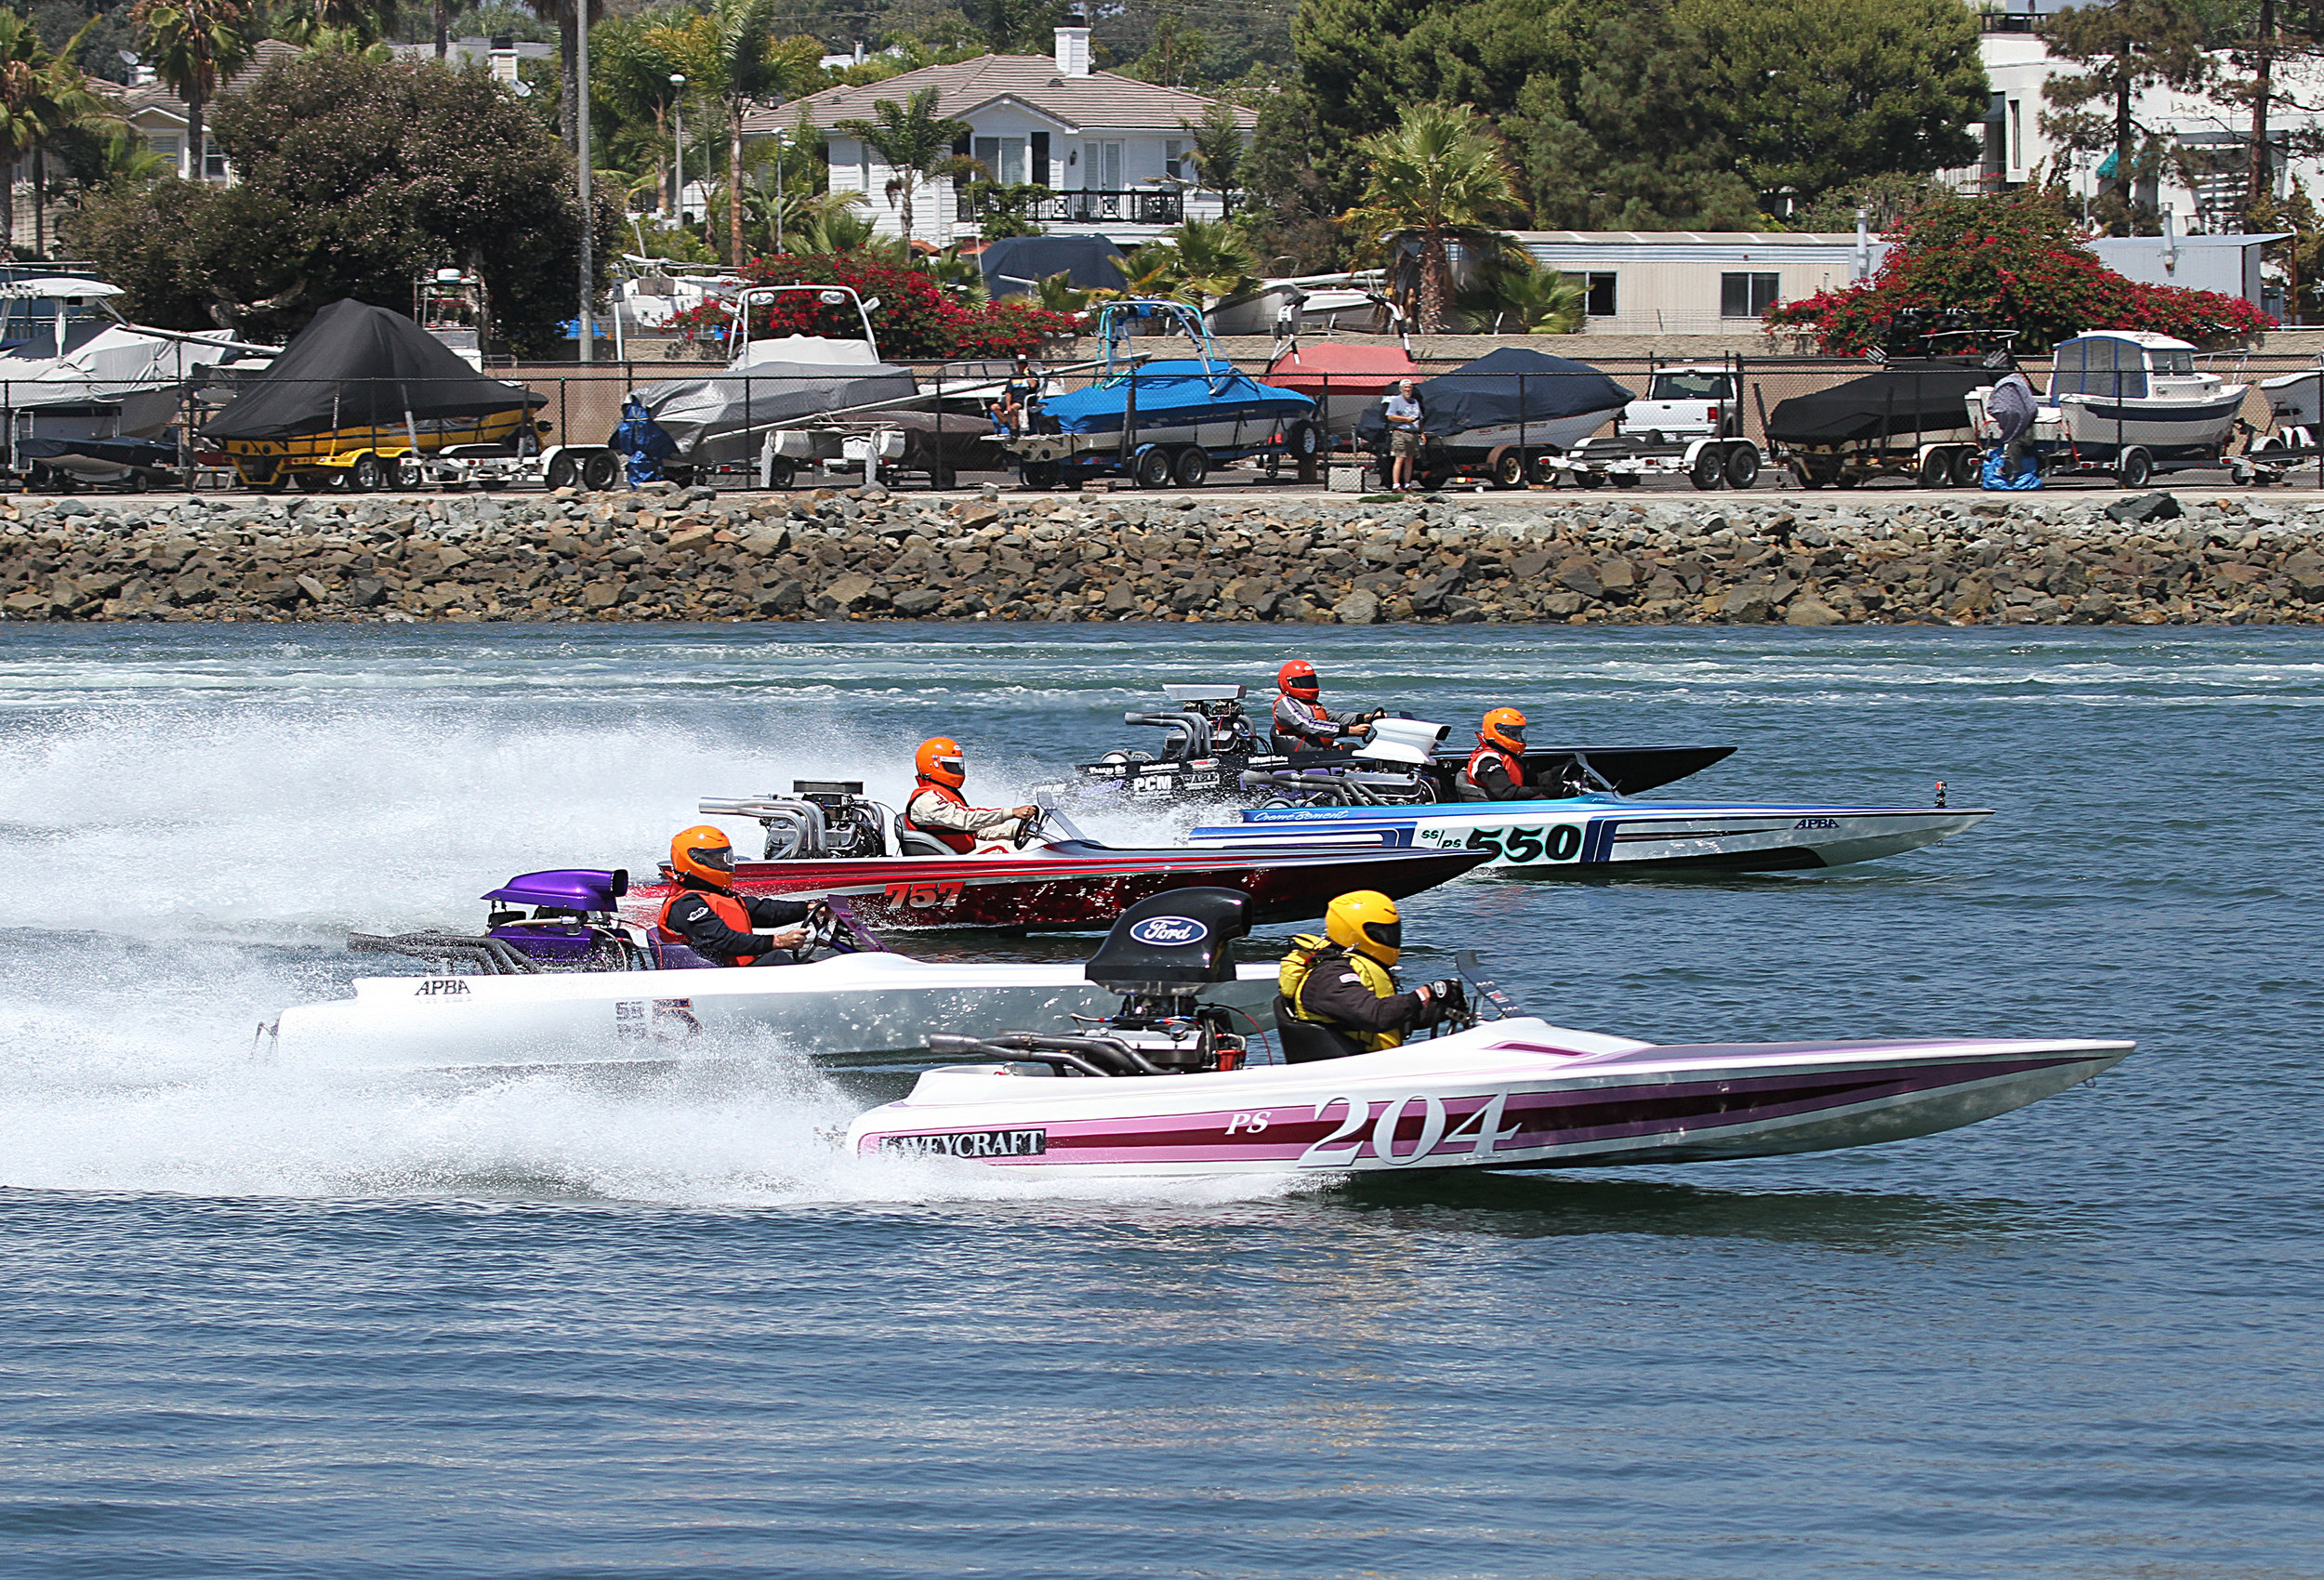 Racing legacy Lavey Craft - pic 1.jpg